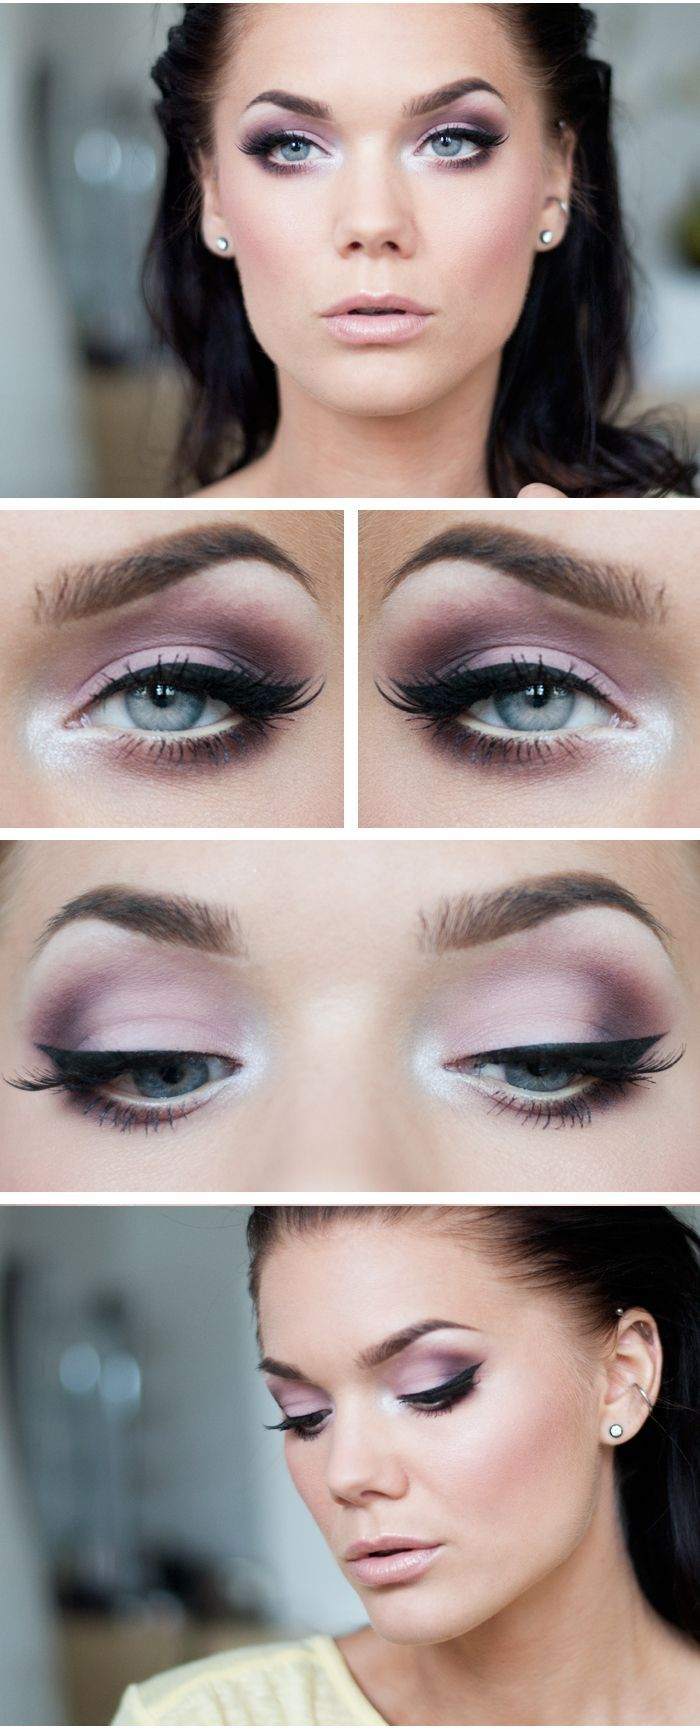 Hochzeit ♡ Wedding ♡ Trauzeugin ♡ Bridesmaid ♡ Make Up ♡ Augen ♡ Eyes http://trendyrita.com